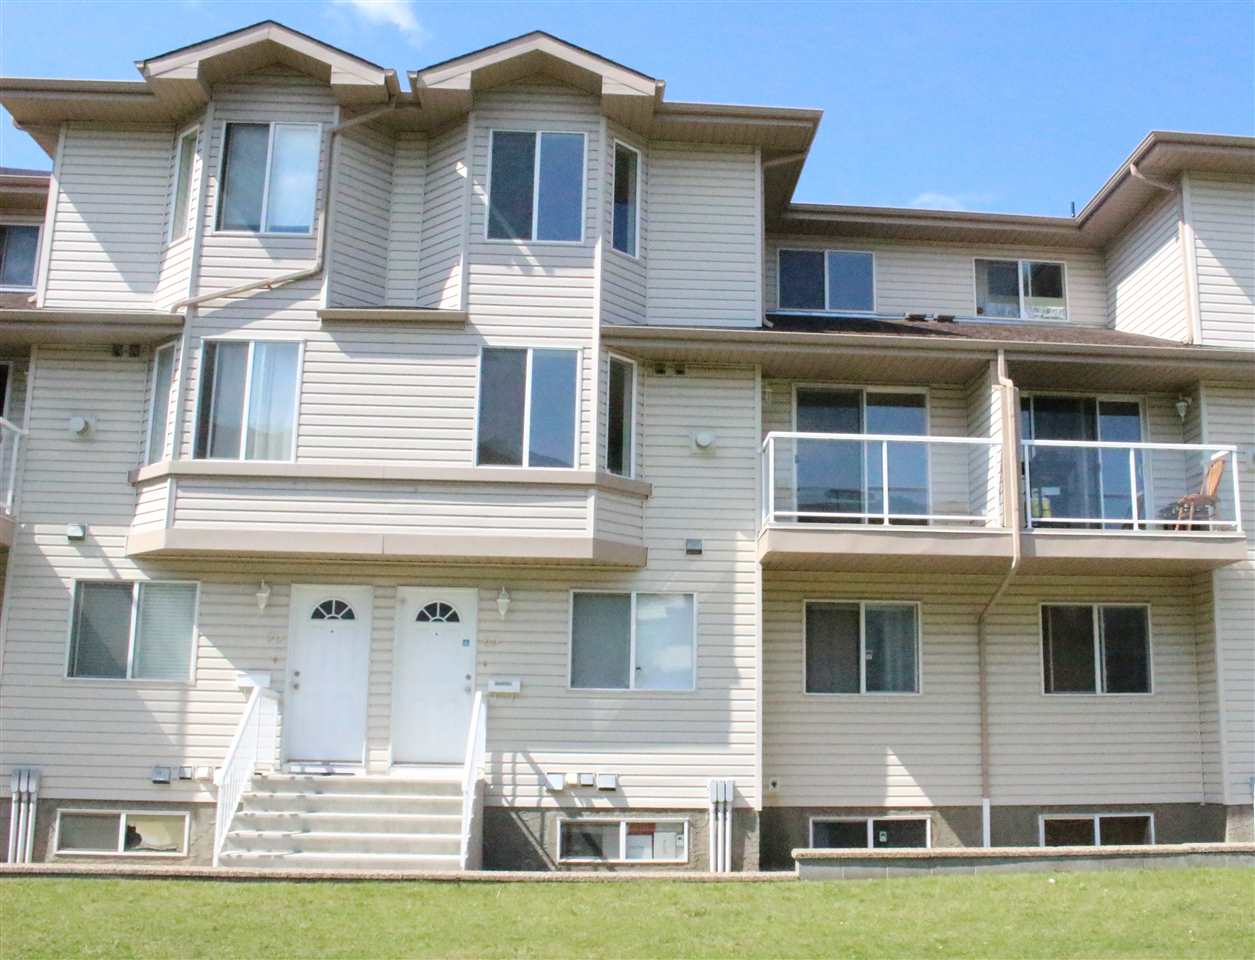 Main Photo: 69 2505 42 Street in Edmonton: Zone 29 Townhouse for sale : MLS® # E4078140